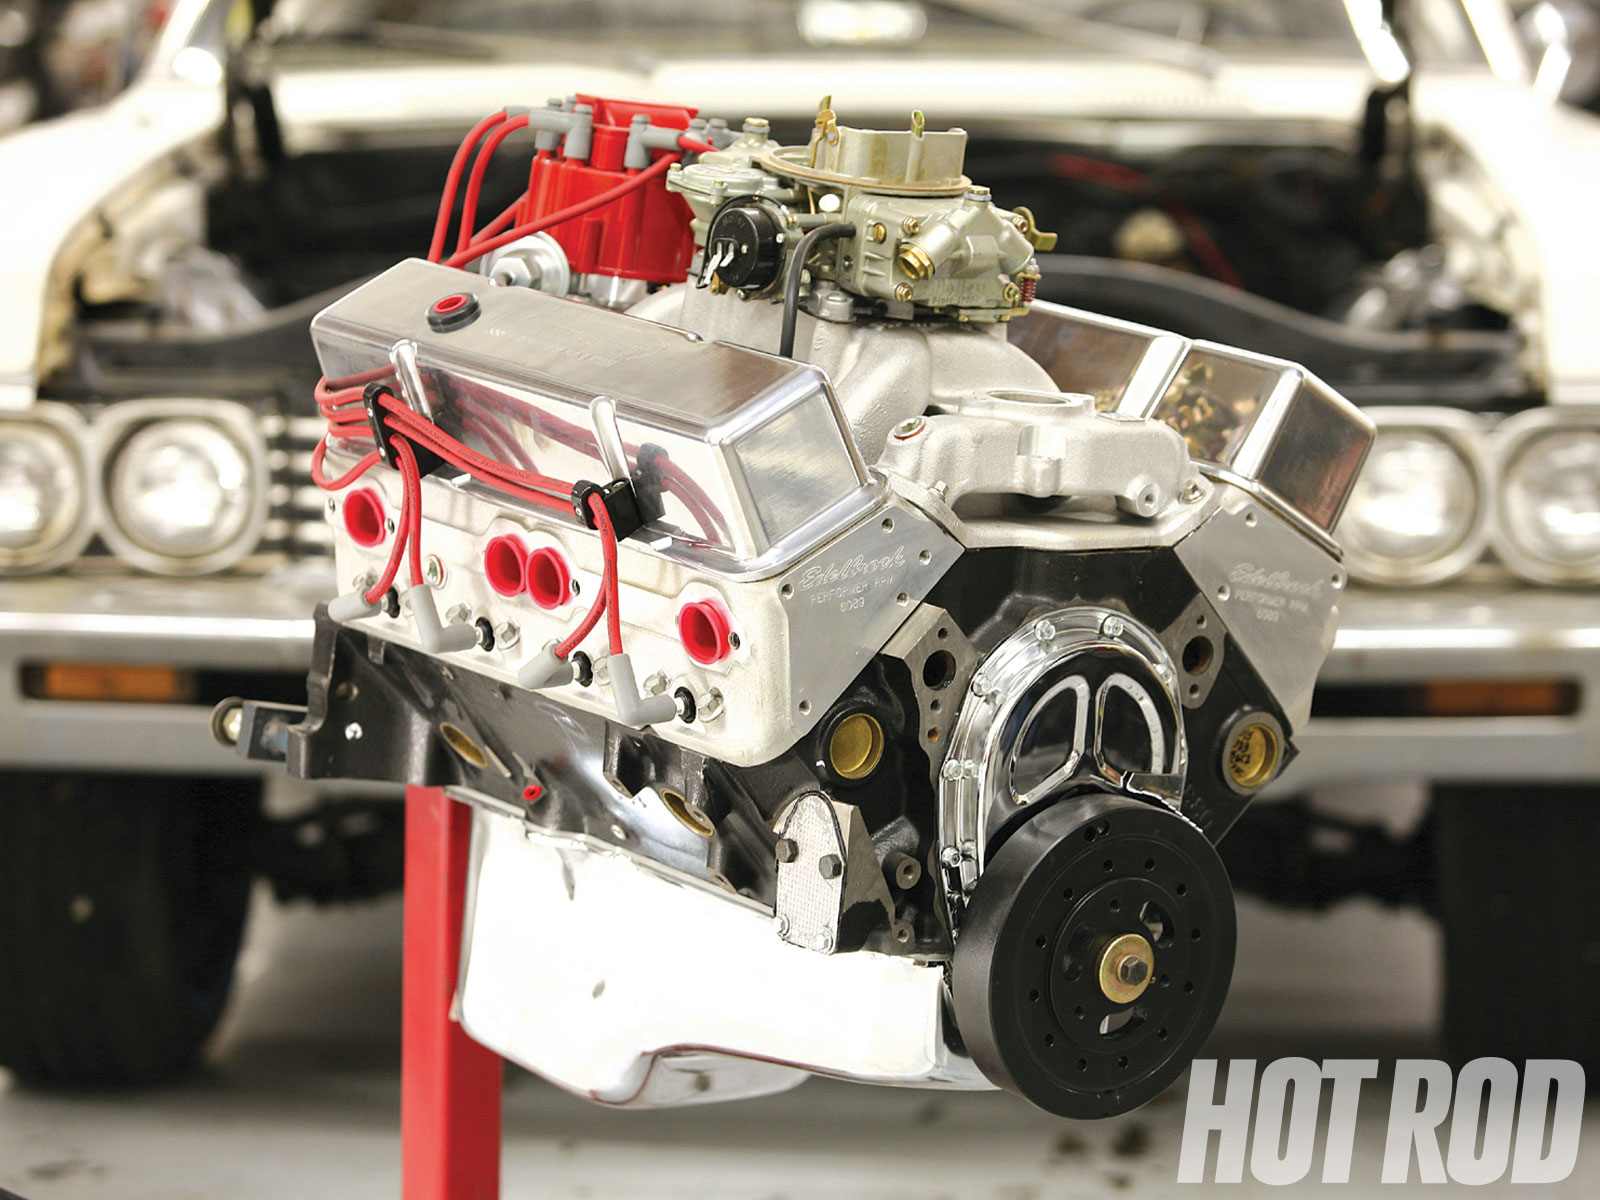 hight resolution of hrdp 1002 01 engine install basics guide